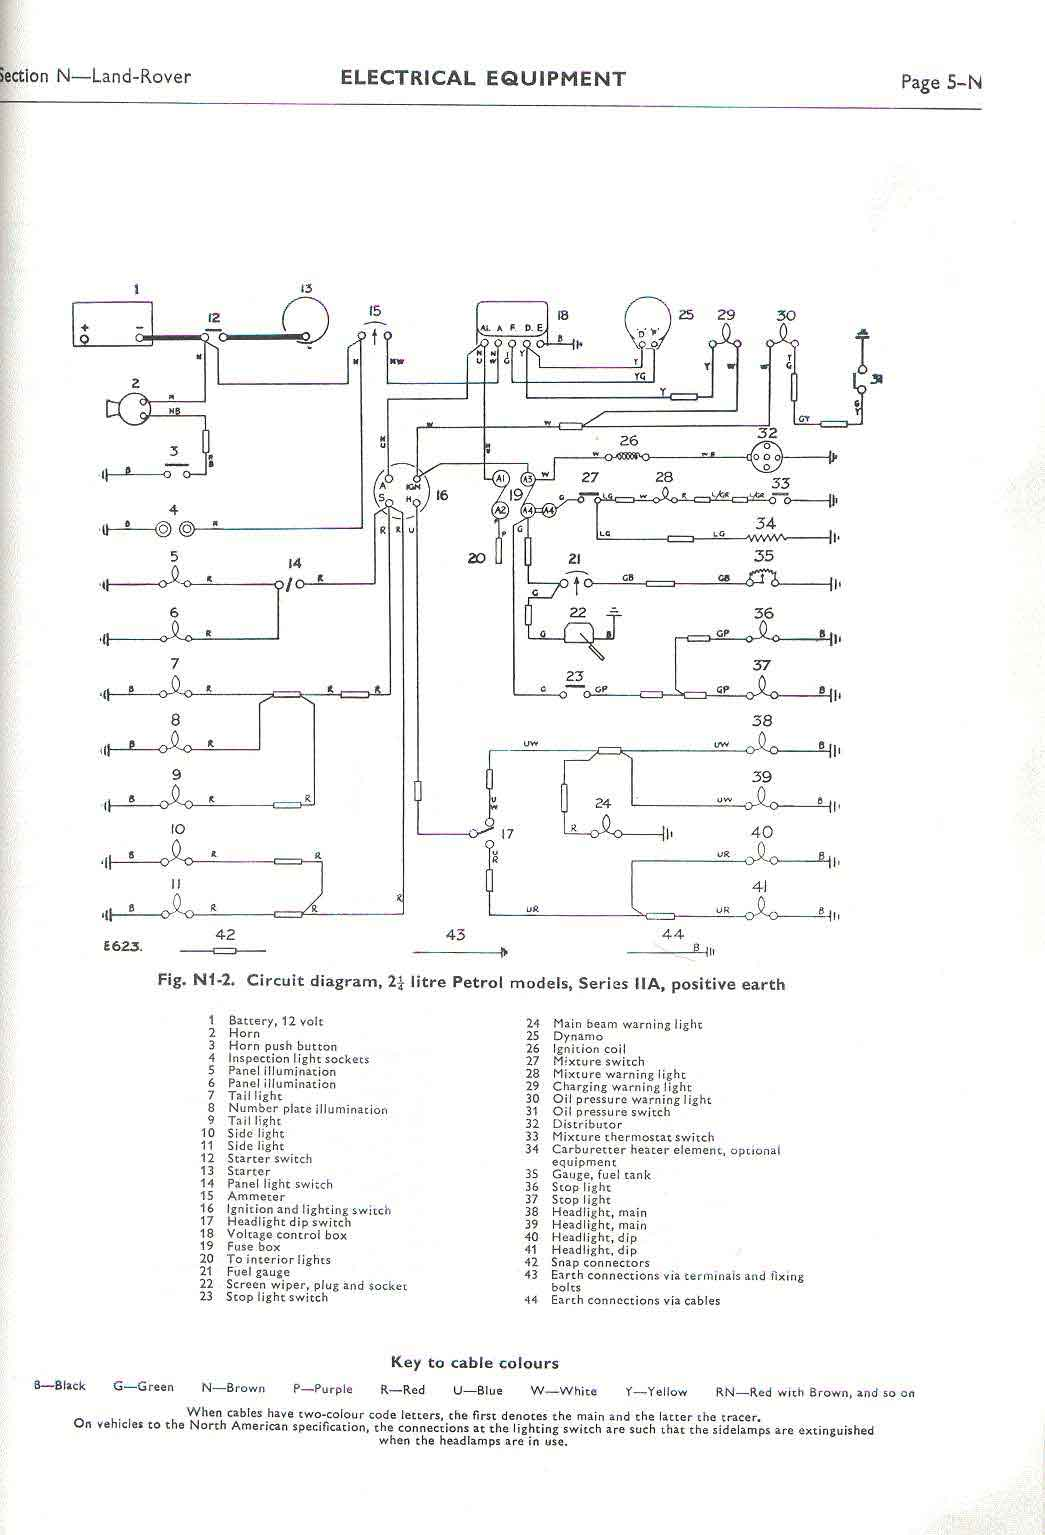 SIIA+VE series wiring diagrams series wiring diagrams instruction Land Rover Series IIA 109 at alyssarenee.co